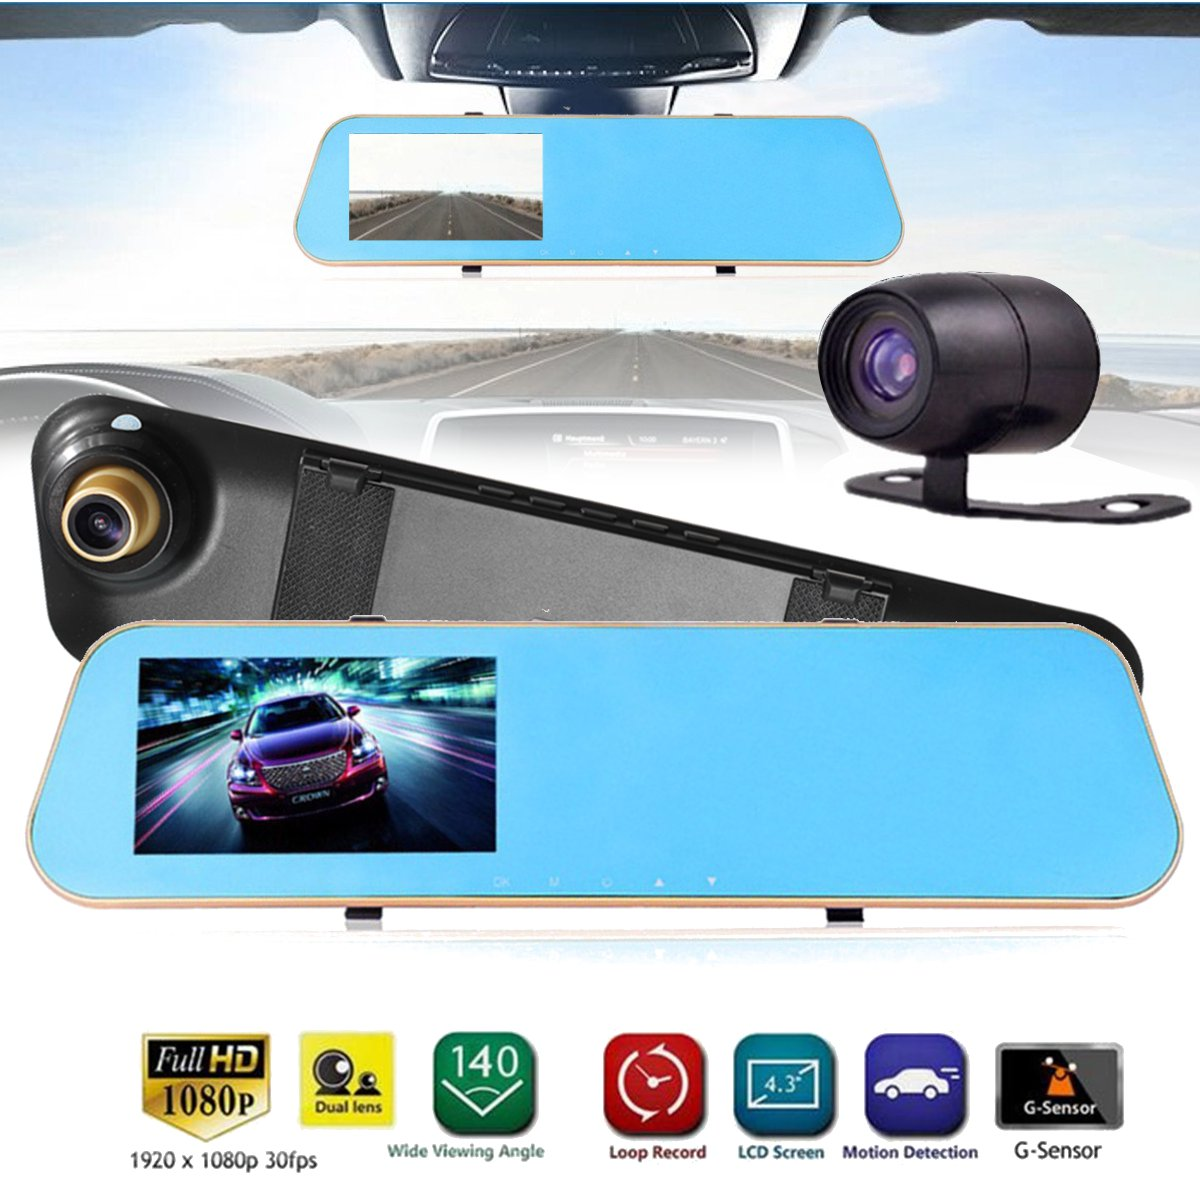 4.3  Dual Lens Car DVR Camera Rearview Reverse Mirror Backup Camera 1080P Full HD Dash Cam Video Recorder Night Vision, Parking Mointor G-sensor Motion Detection